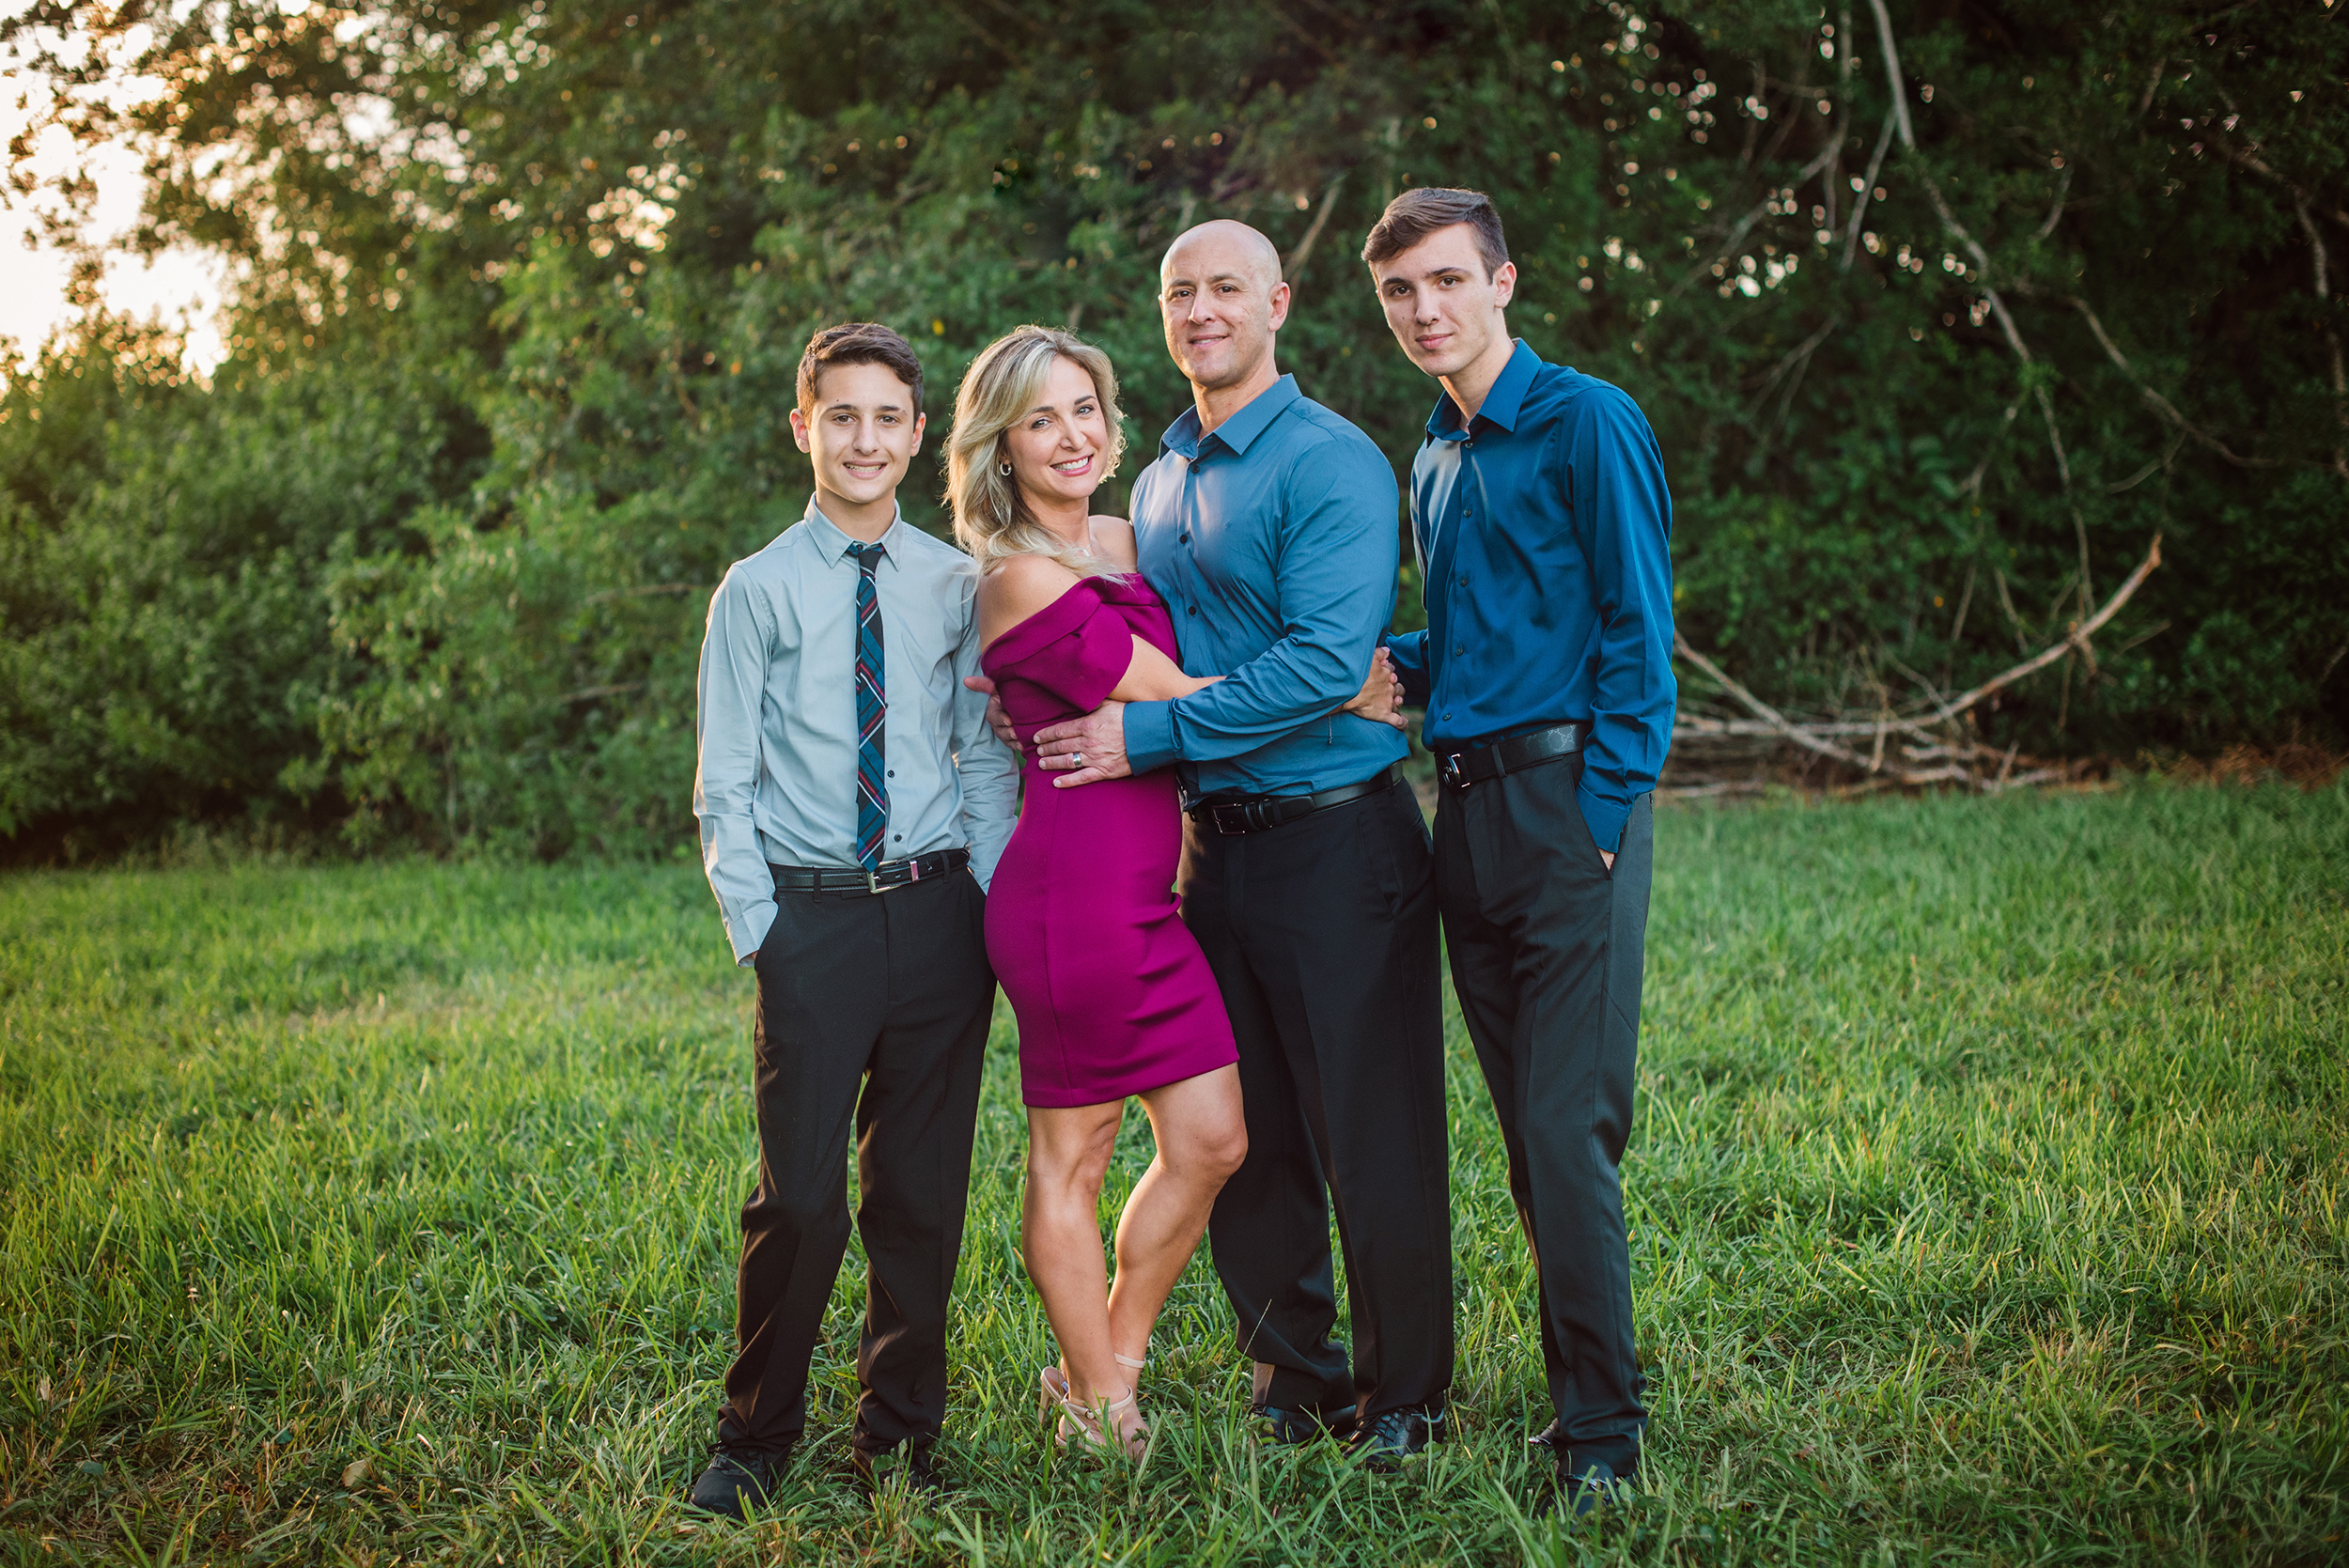 family-photography-south-florida-alison-frank-photography_04.jpg